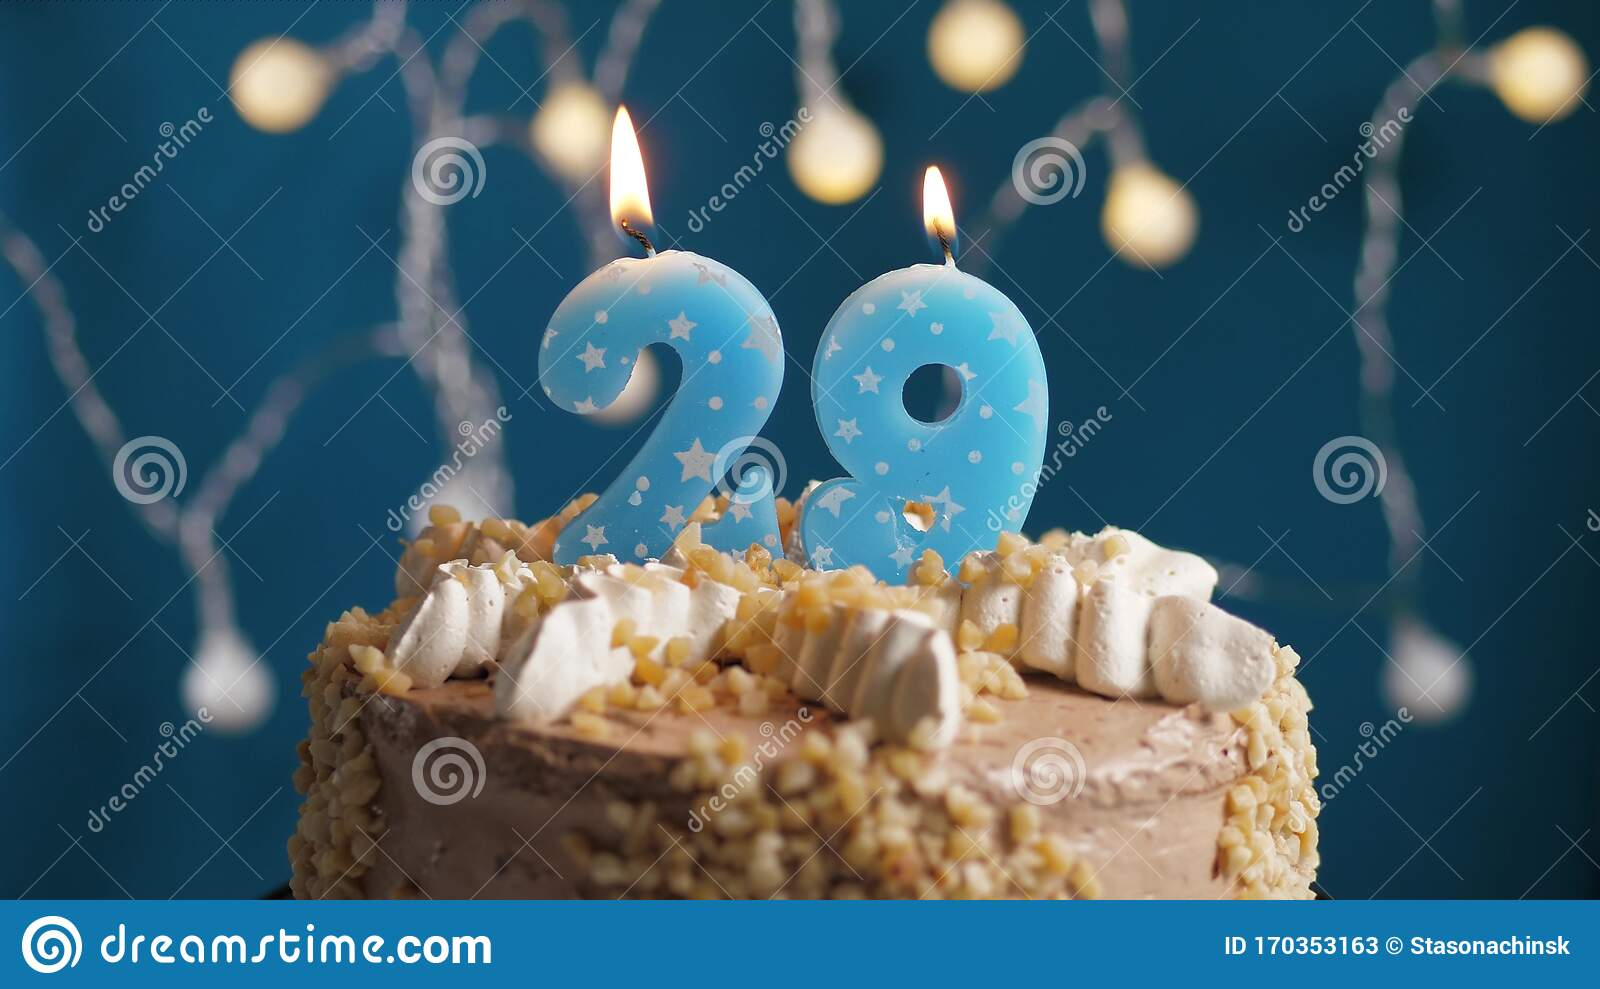 Wondrous Birthday Cake With 29 Number Candle On Blue Backgraund Stock Image Personalised Birthday Cards Arneslily Jamesorg